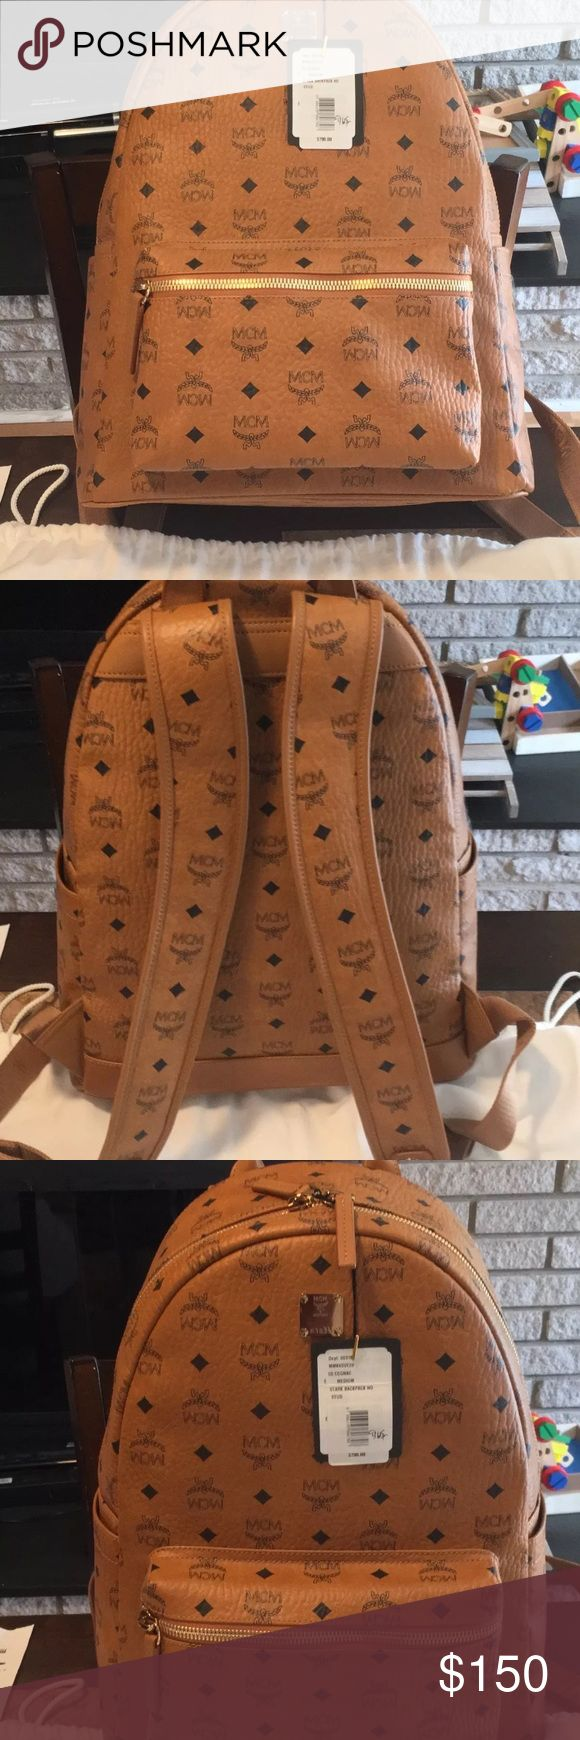 Mcm backpack Selling cheap, I have multiple in stock as of right now, I will not be responding to posh mark comments so if you have any questions text me - 531 301 2735 , I am also willing to negotiate the price . MCM Bags Backpacks